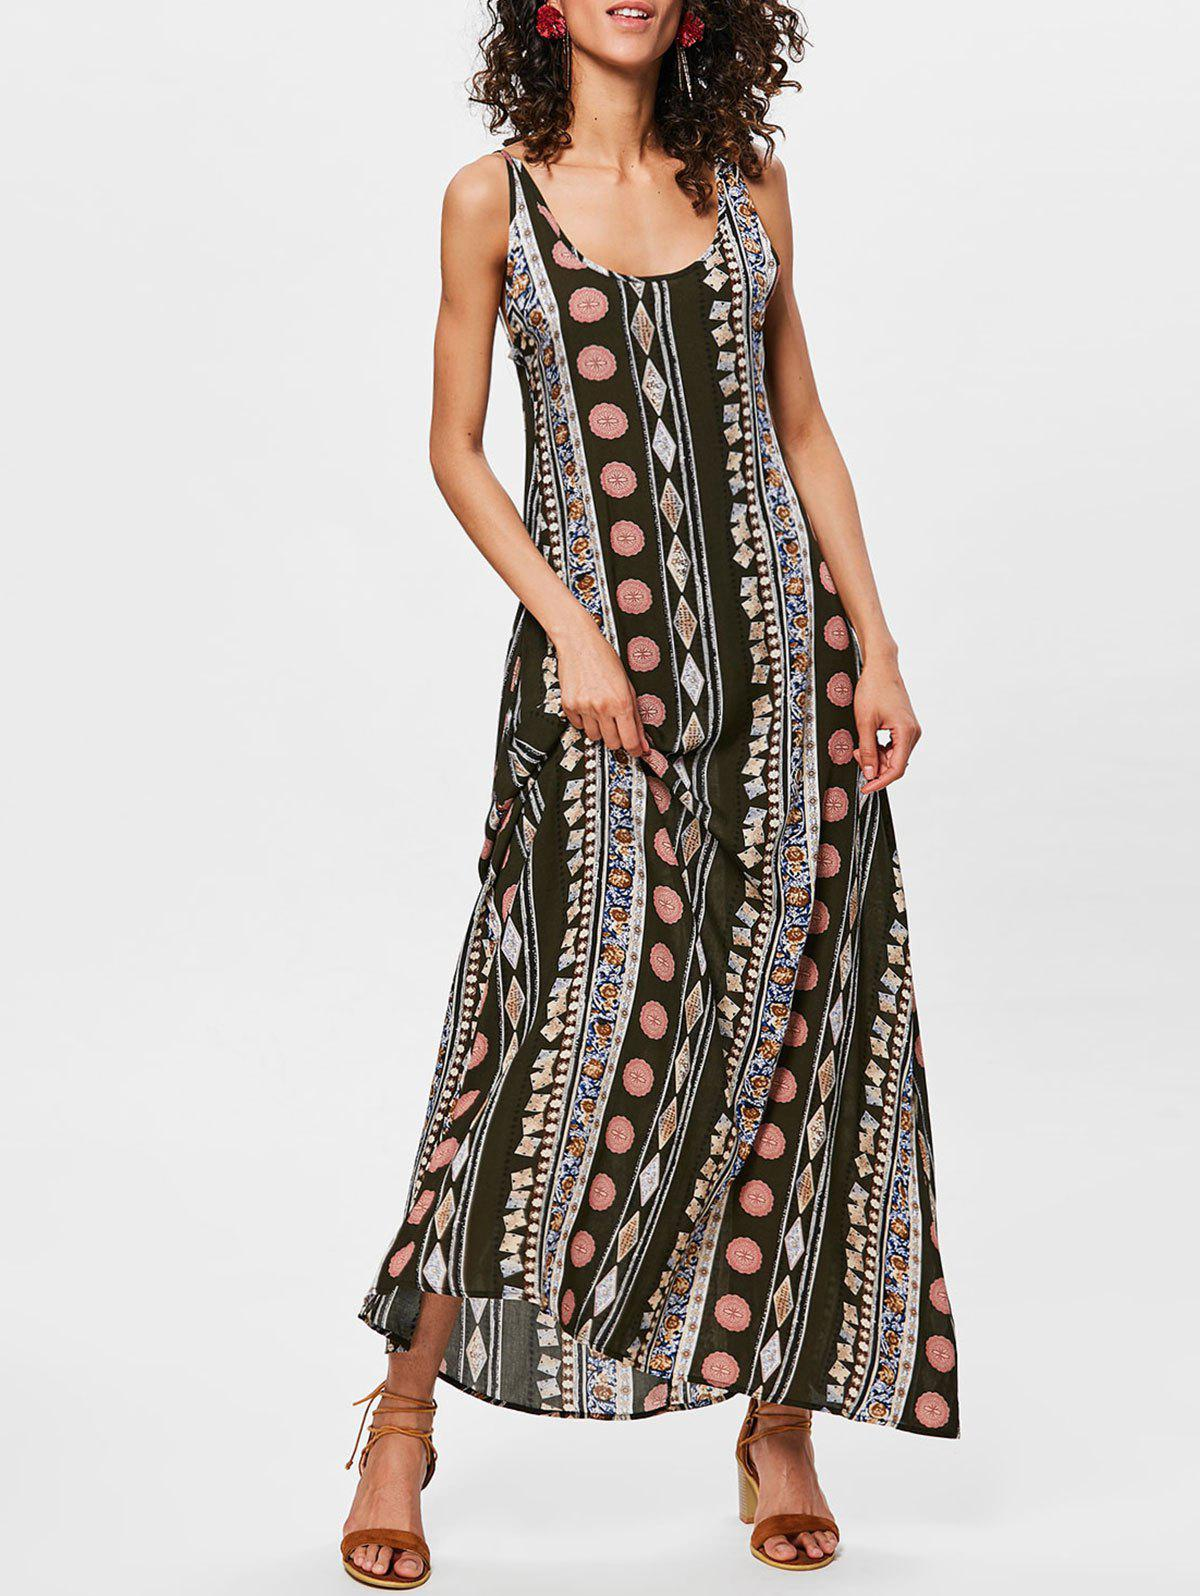 Bohemian Ethnic Print Backless Maxi Trapeze Dress - multicolor 2XL